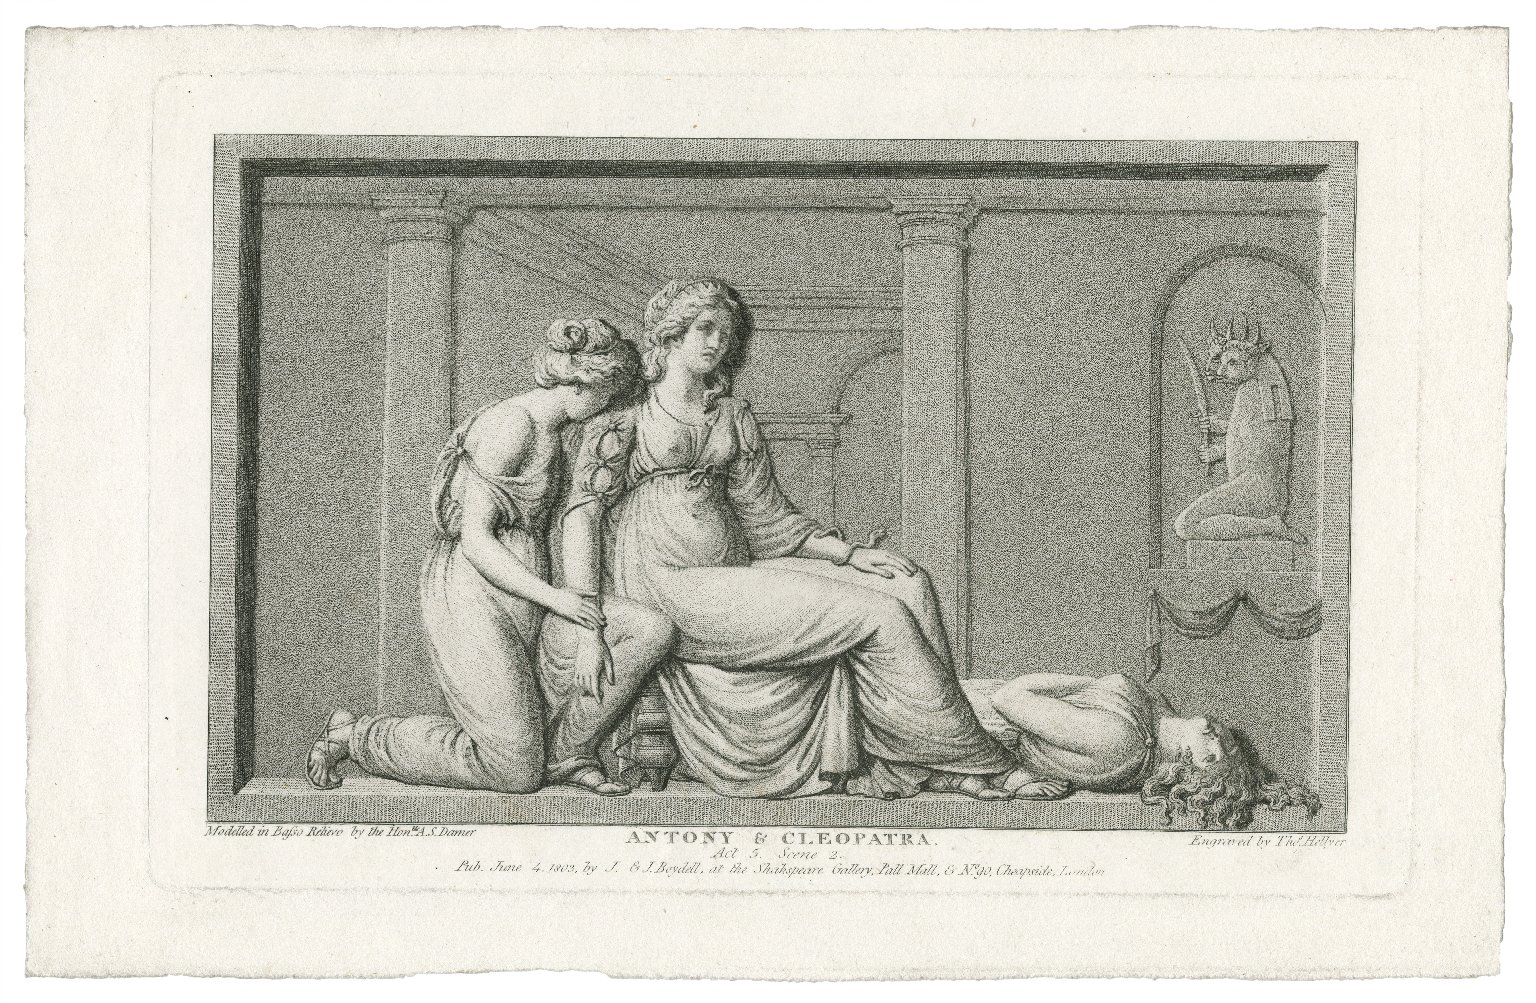 Antony & Cleopatra: act 5, scene 2 [graphic] / modelled in basso relievo by the Honble A.S. Damer ; engraved by Thos. Hellyer.